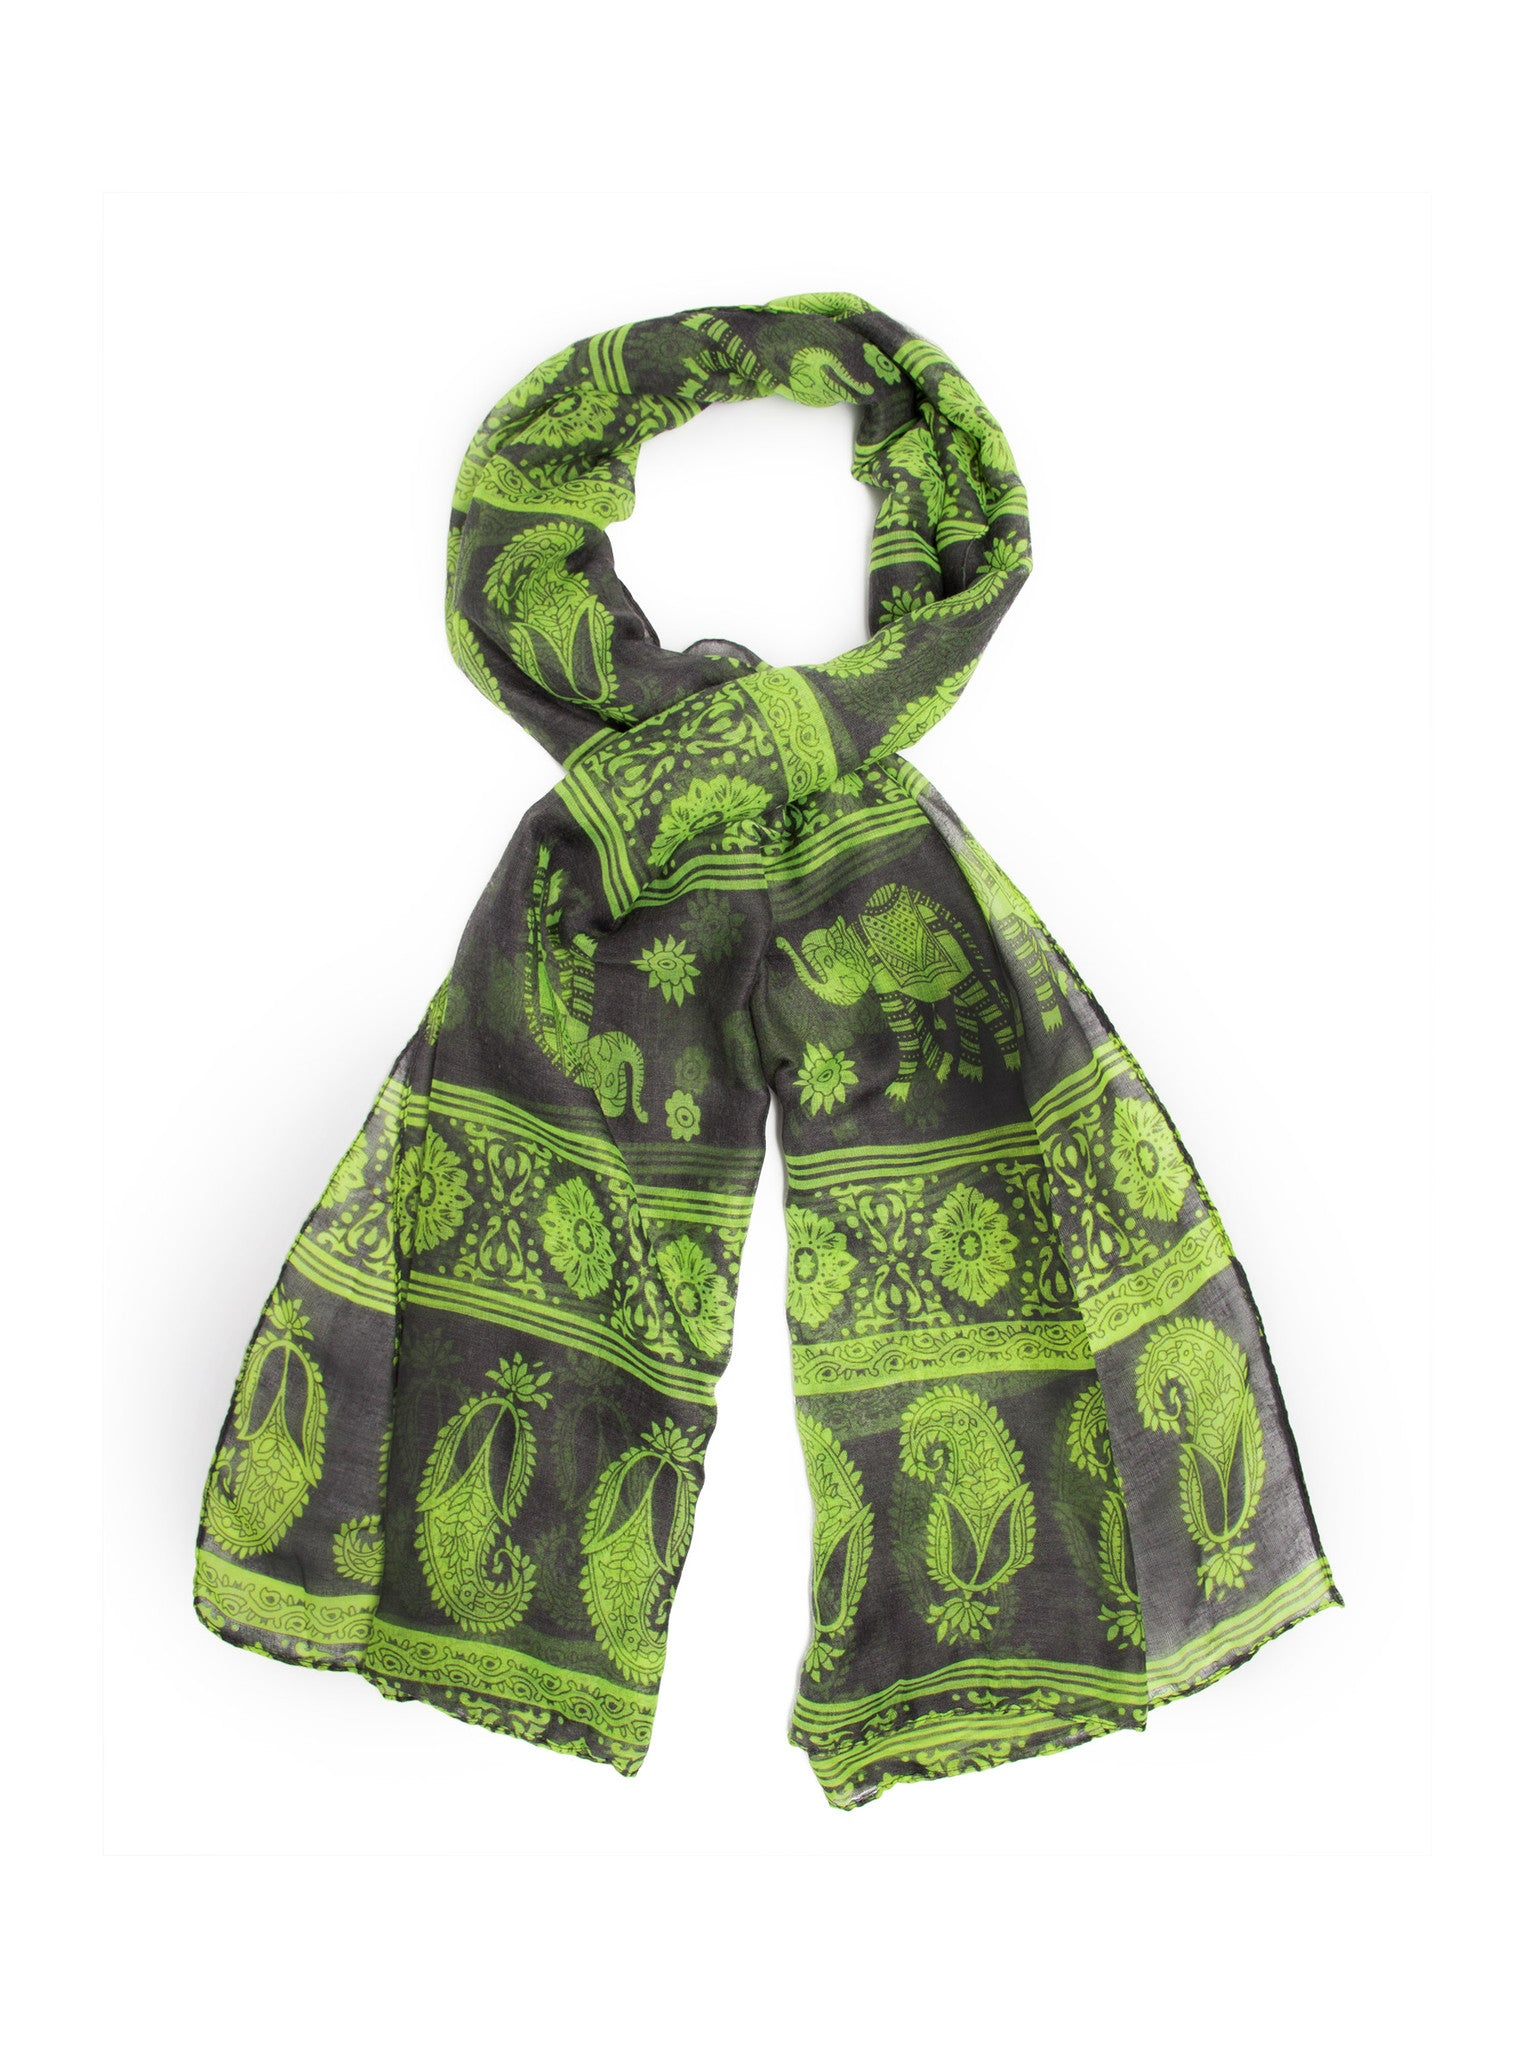 Scarves - Gaja Shawl, Paisley Indian Elephant Print Scarf, Shawl, Beach Wrap -(Gray/Lime / One Size) Bohomonde  - 2